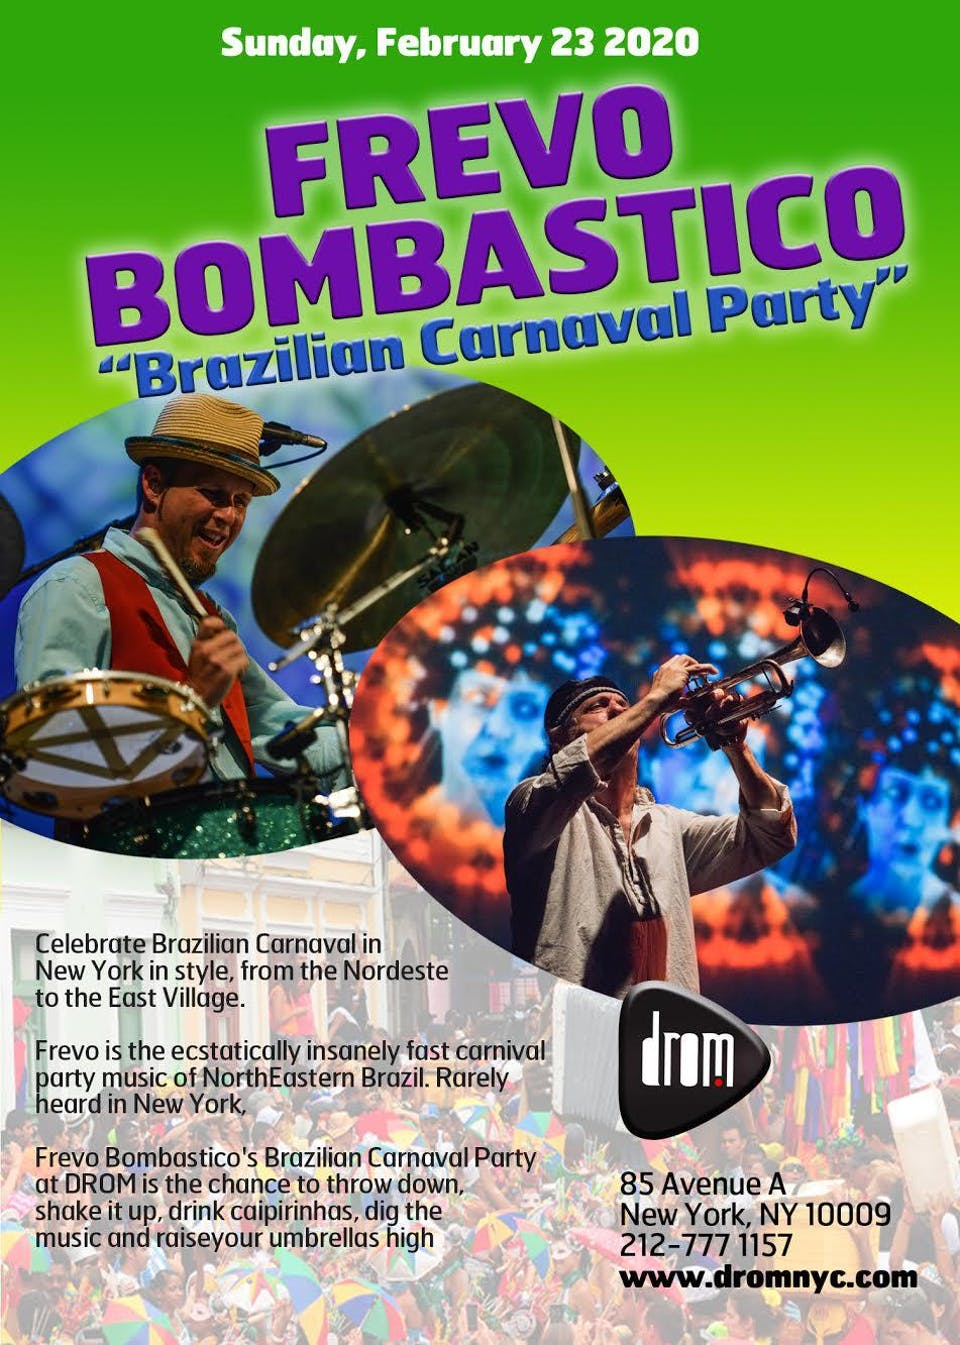 Frevo Bombastico: Brazilian Carnaval Party at DROM